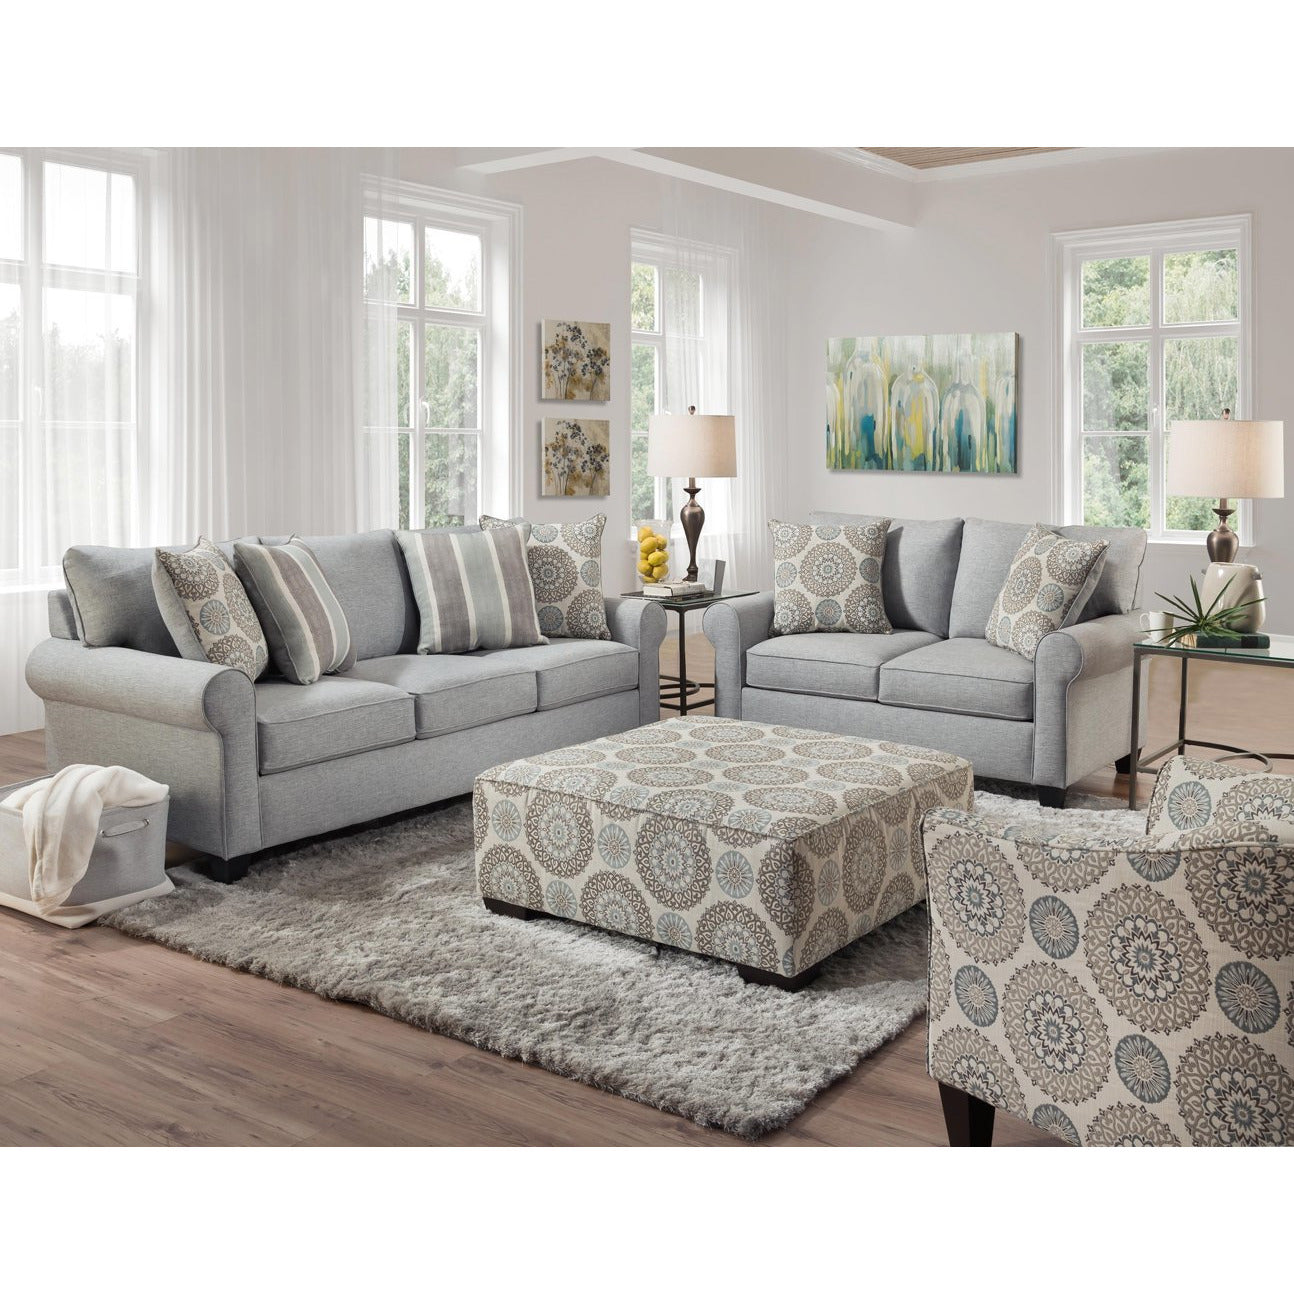 Spa Loveseat